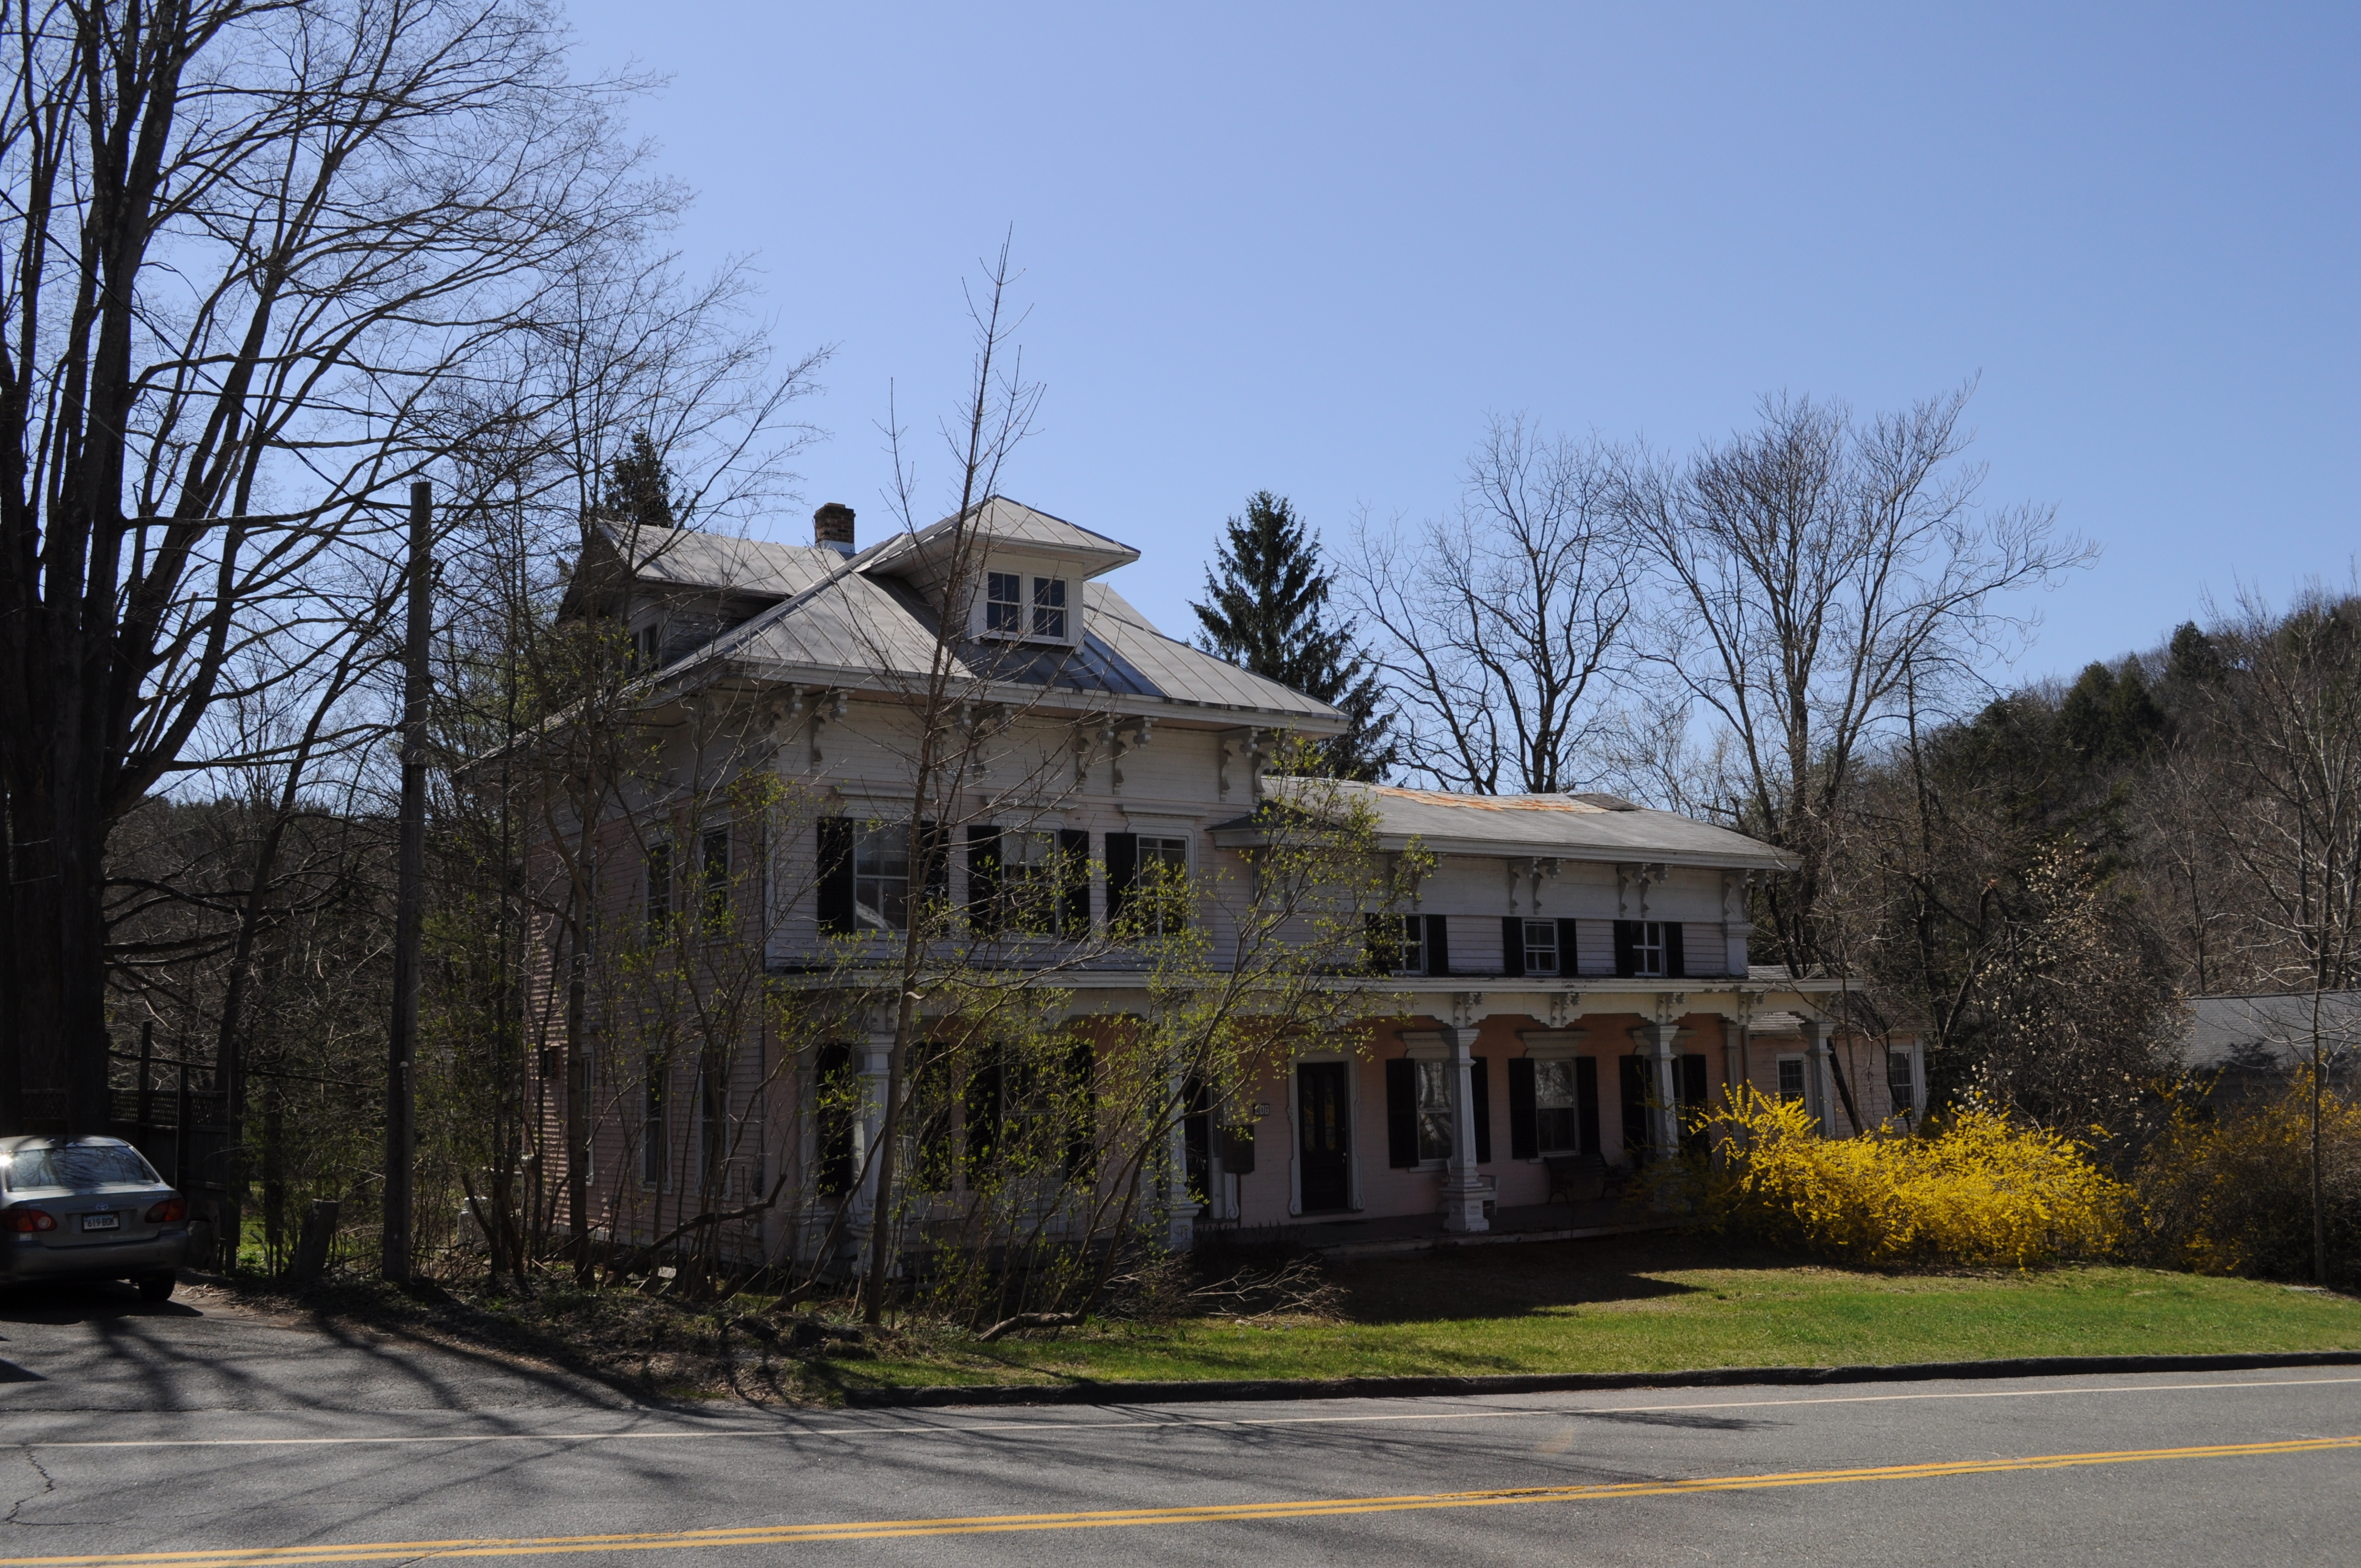 File:West Cornwall, CT - old house 02.jpg - Wikimedia Commons